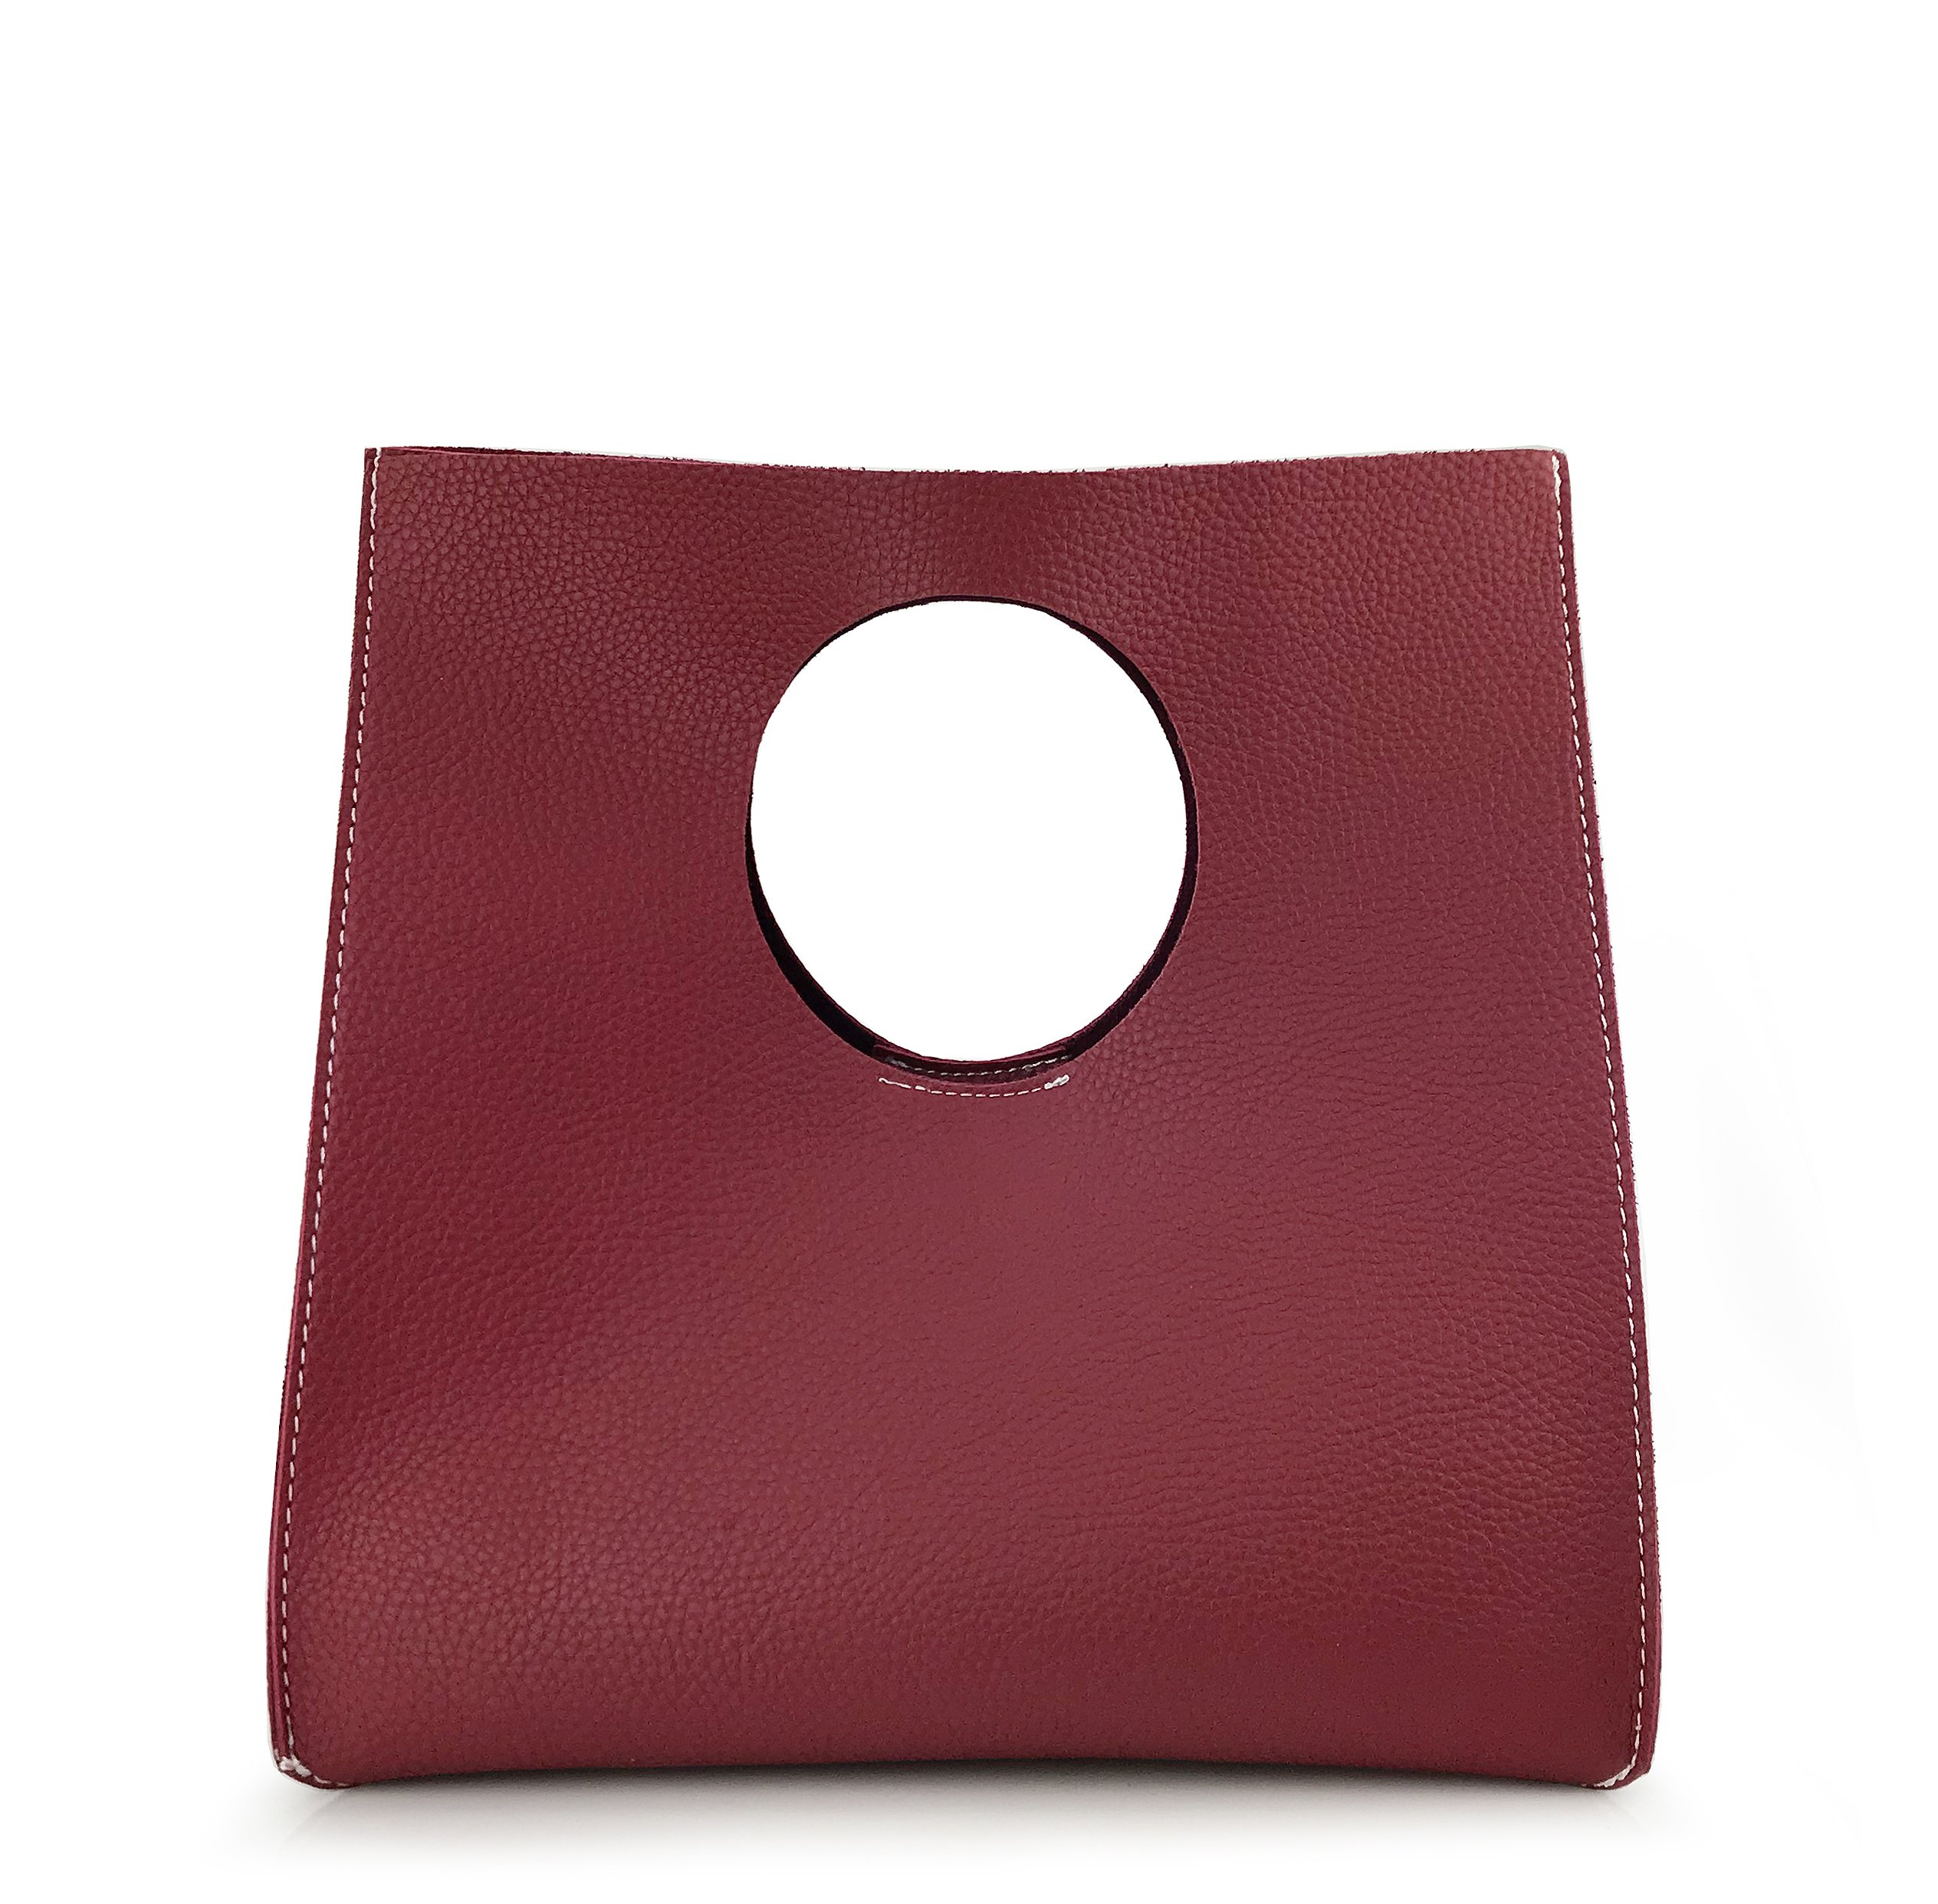 Hoxis Vintage Minimalist Style Soft Pu Leather Handbag Clutch Small Tote (Burgundy)